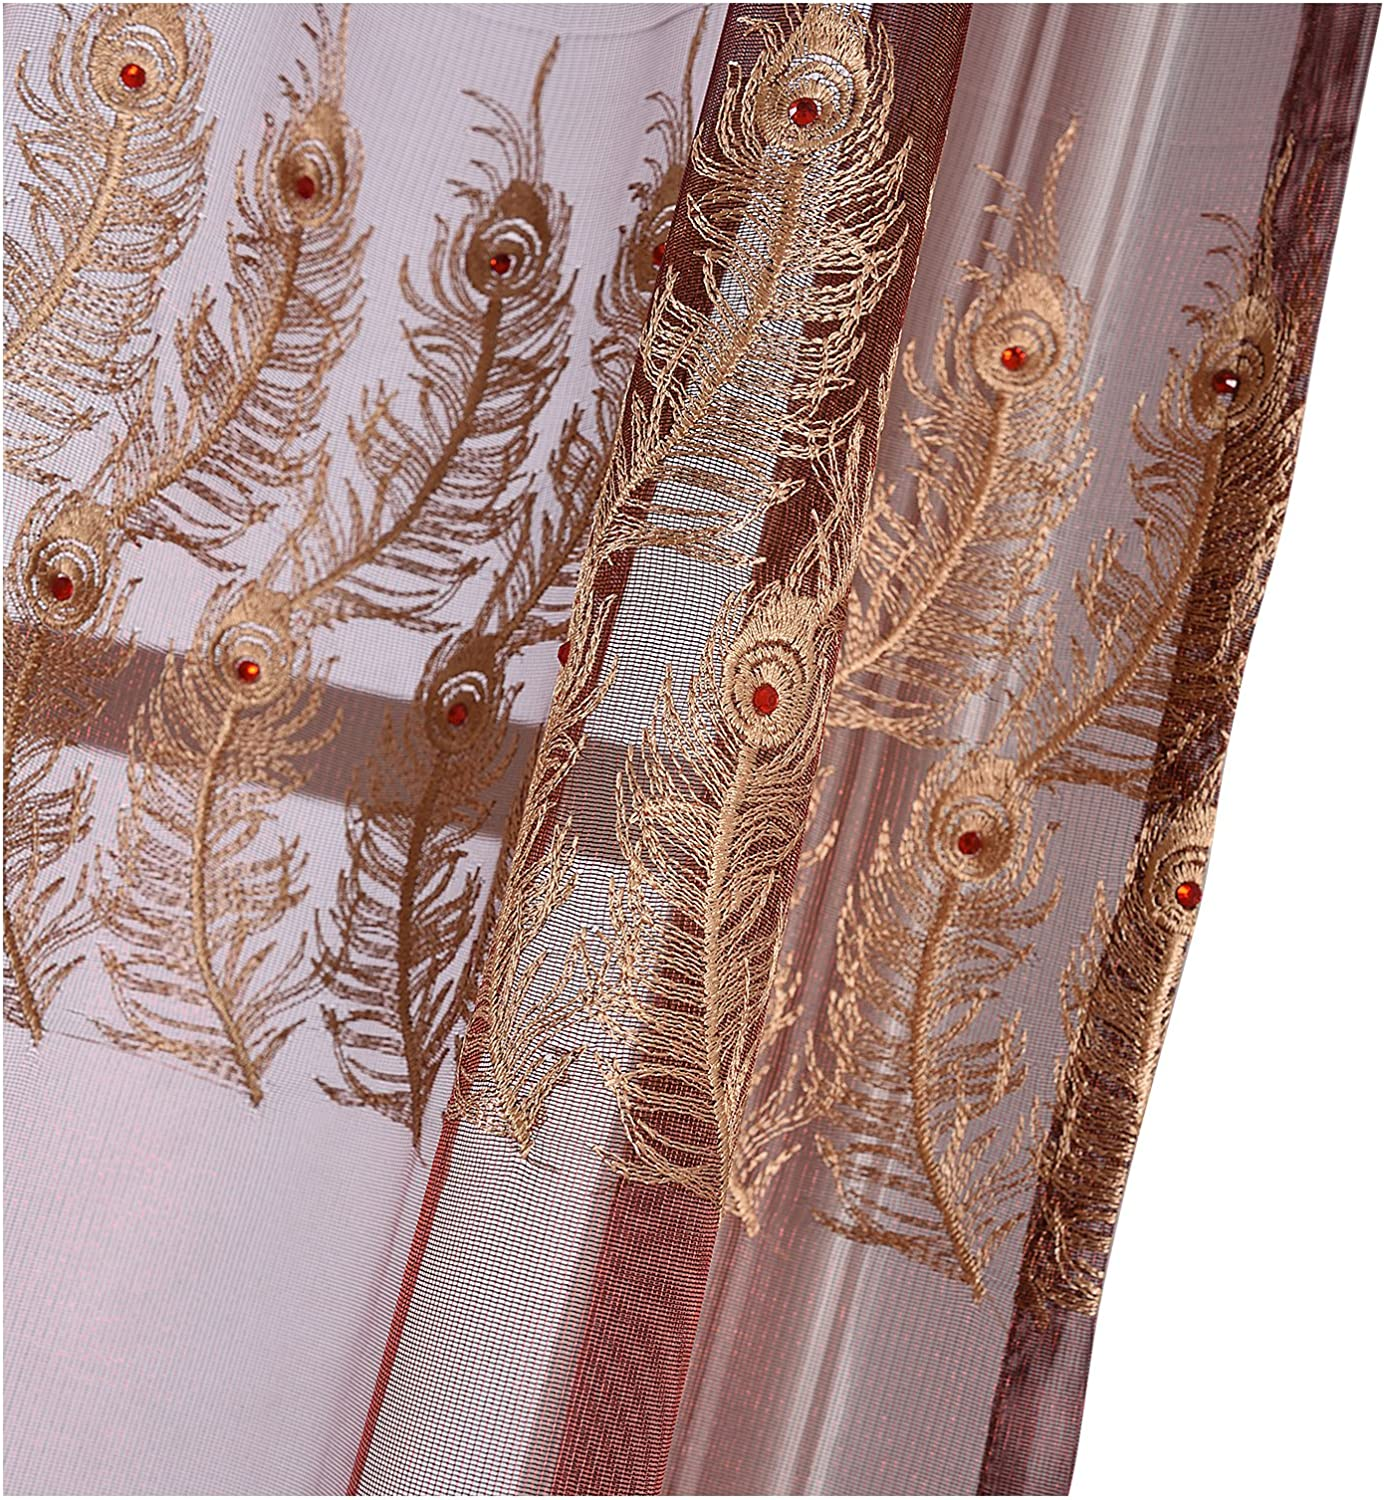 BW0057 Sheer Window Curtains Feather Voile Free shipping Opening large release sale New Top Print Pocket Rod